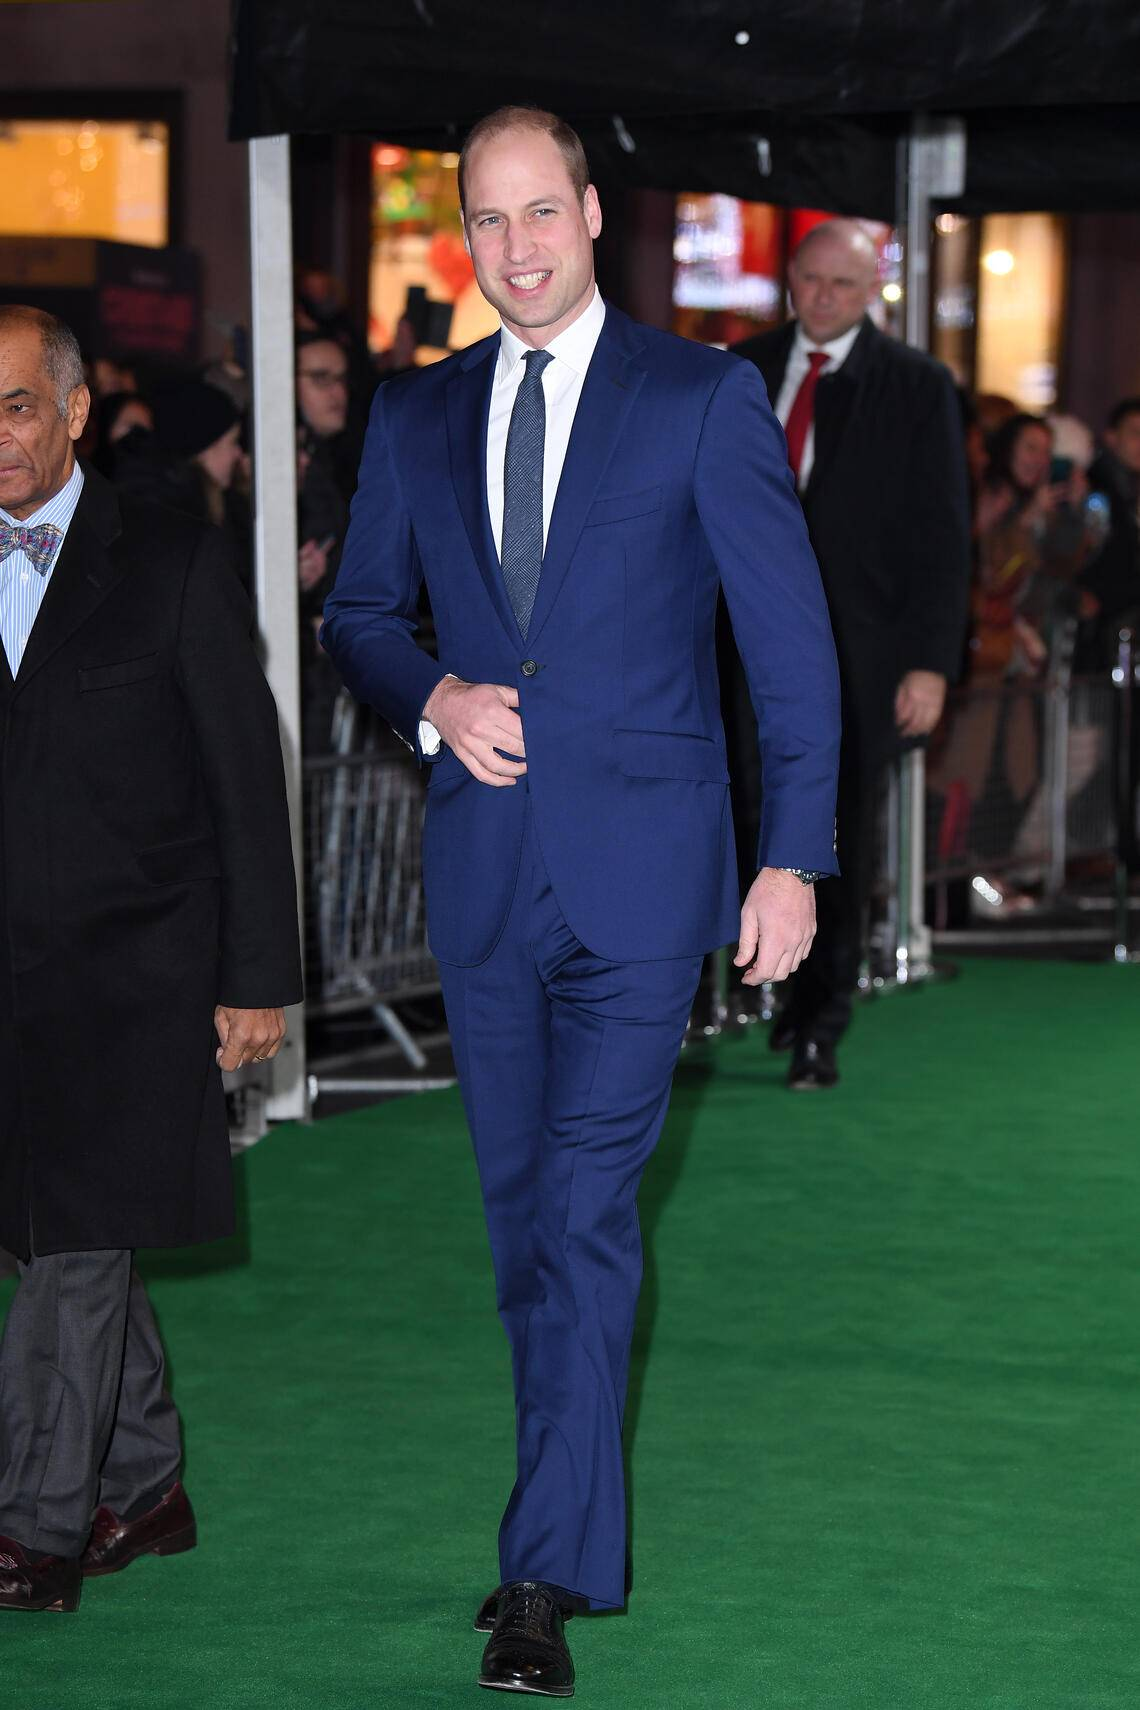 LONDON, ENGLAND - NOVEMBER 21: Prince William, Duke of Cambridge attends the Tusk Conservation Awards at The Empire Cinema on November 21, 2019 in London, England. (Photo by Karwai Tang/WireImage)